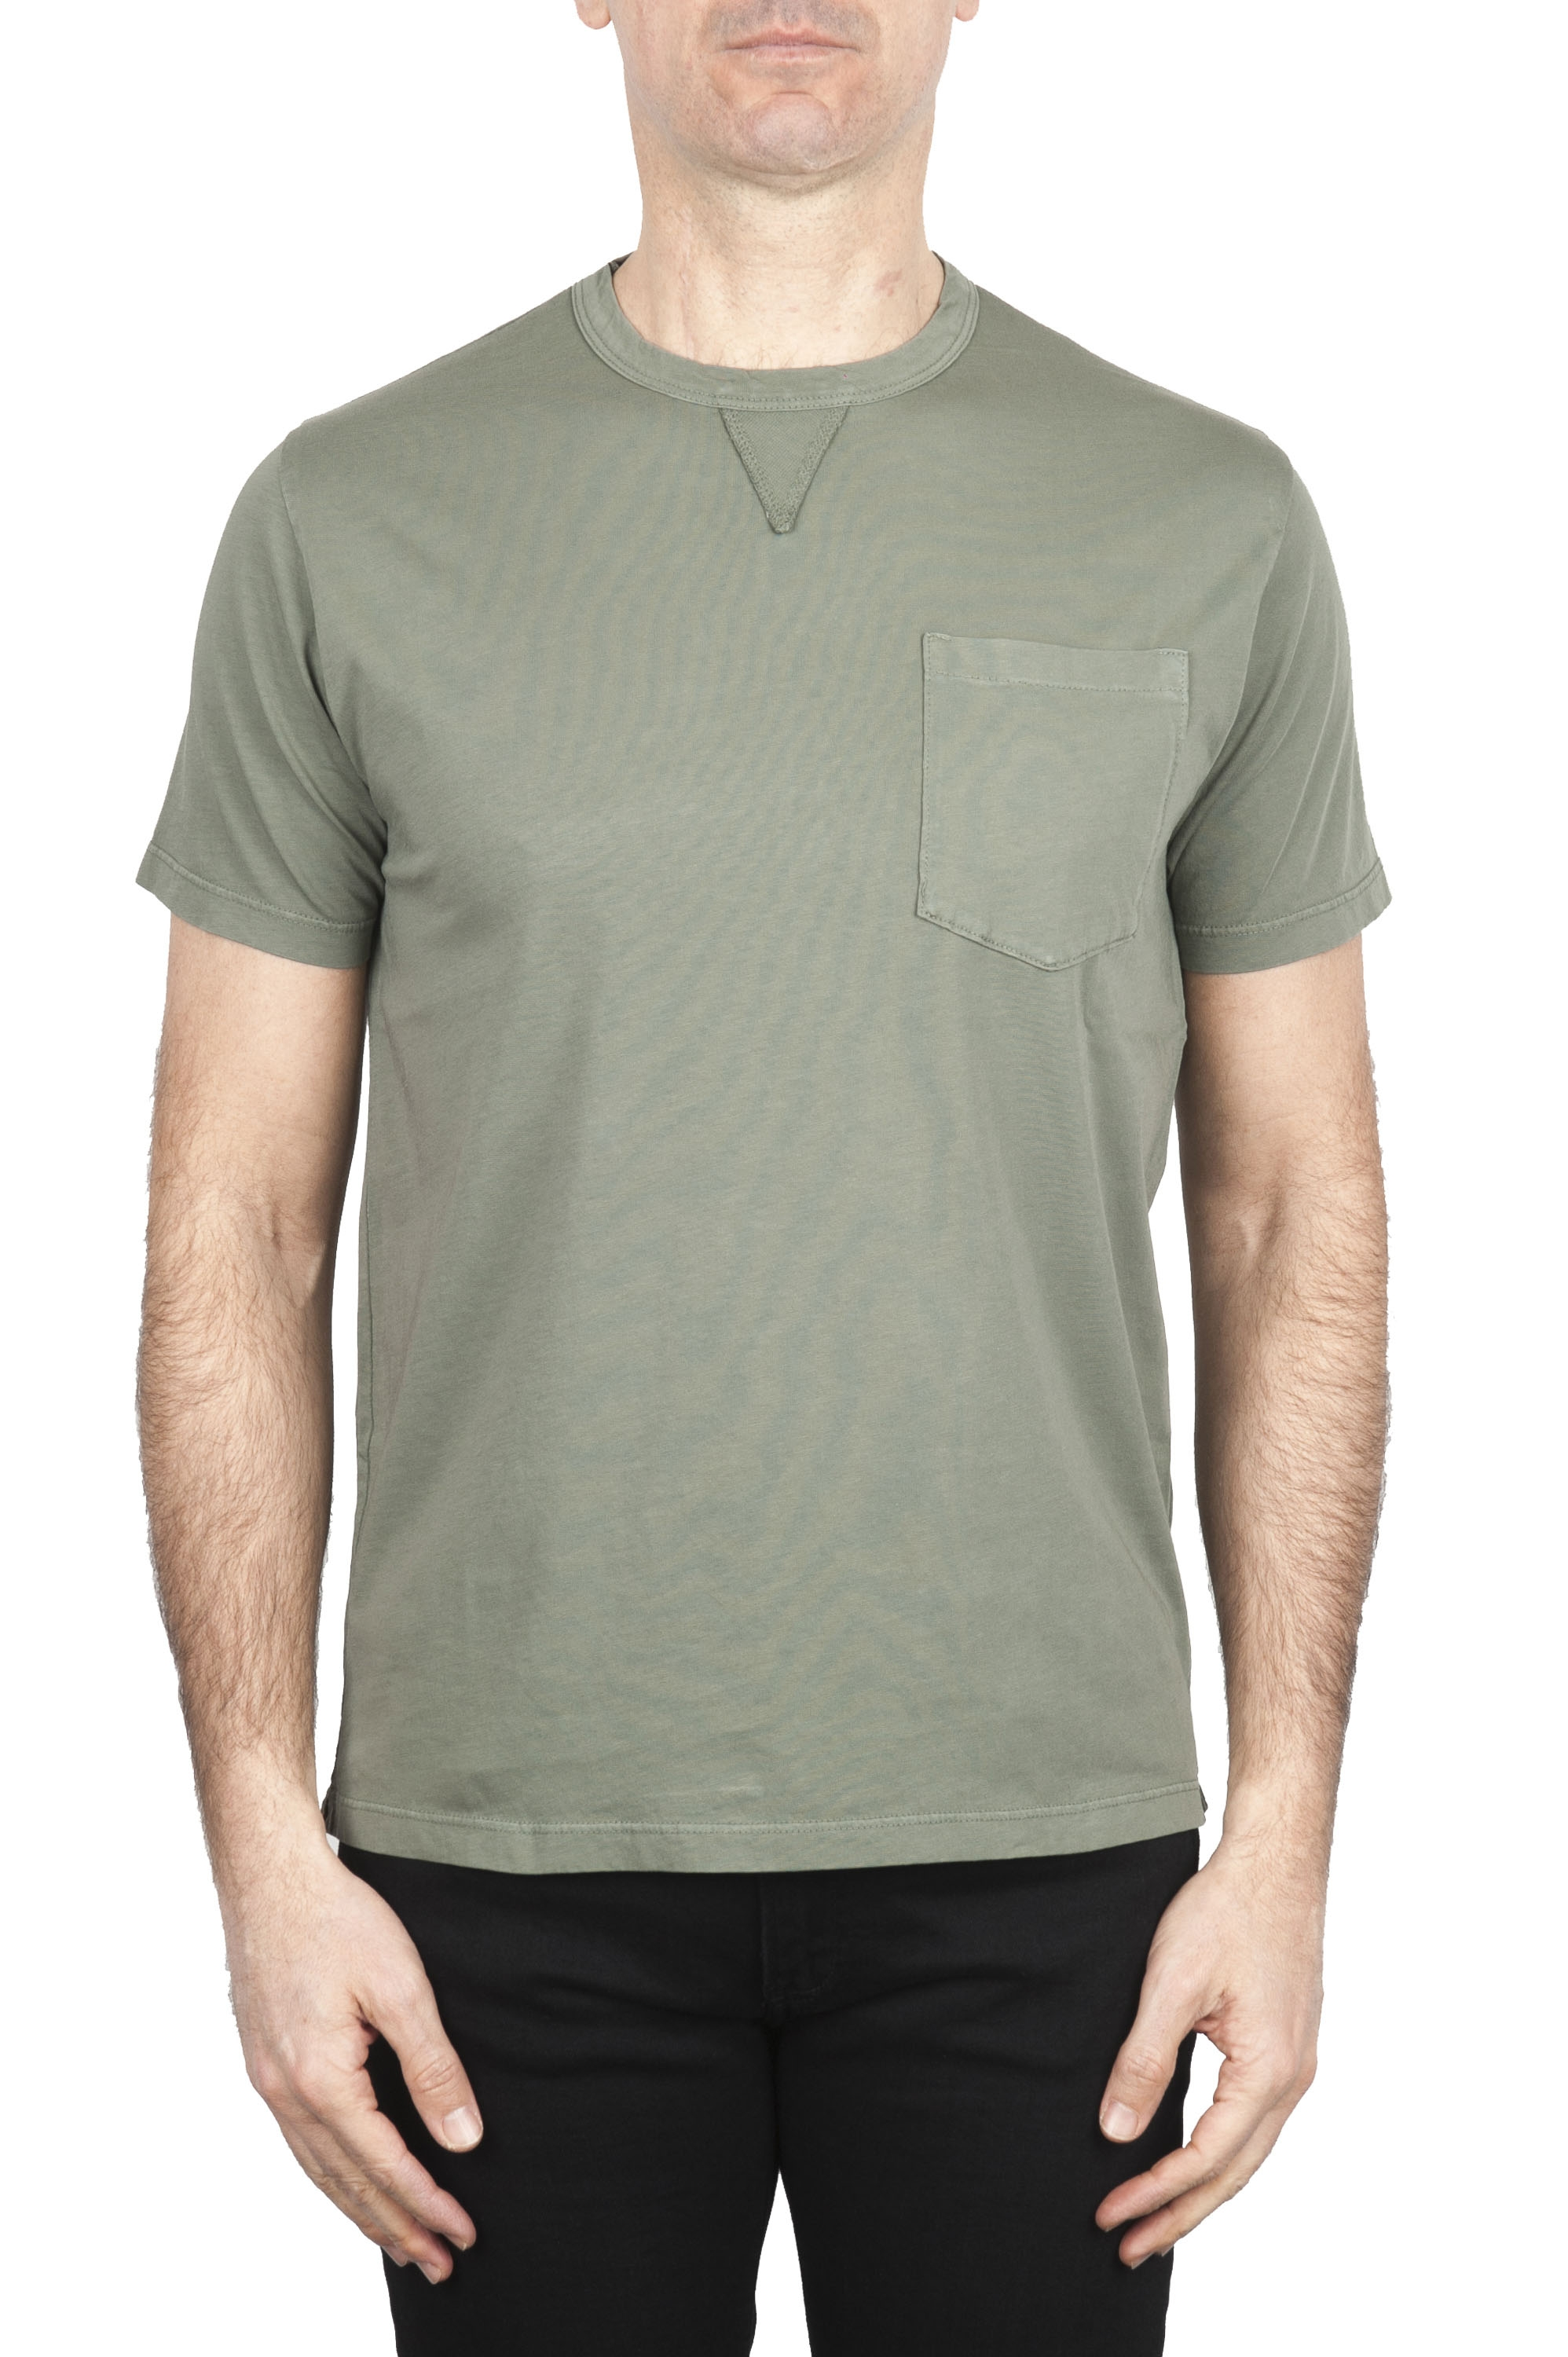 SBU 01654 Round neck patch pocket cotton t-shirt green 01